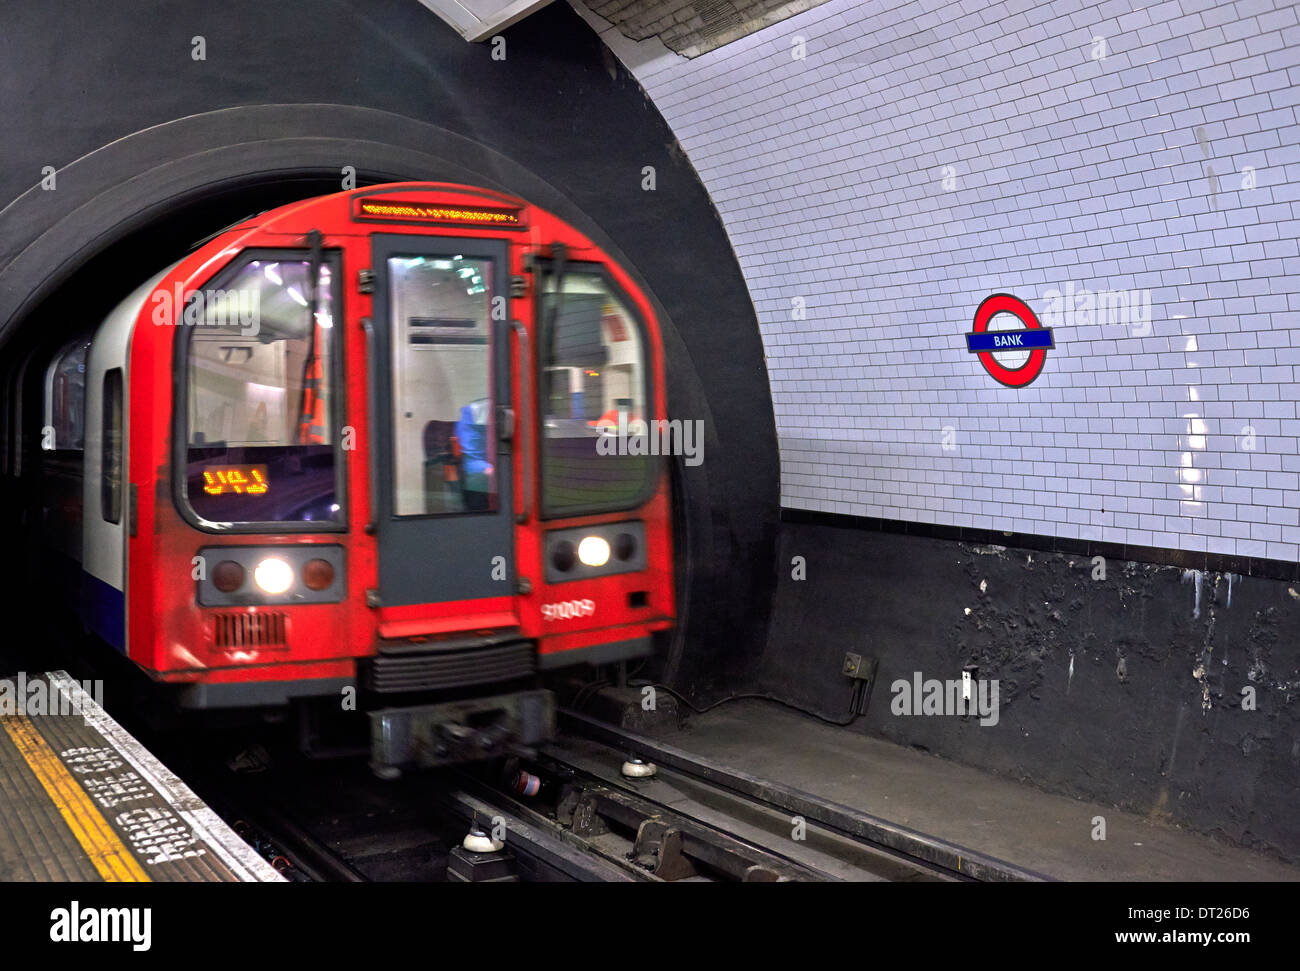 The London Underground (also known as the Tube or simply the Underground) - Stock Image